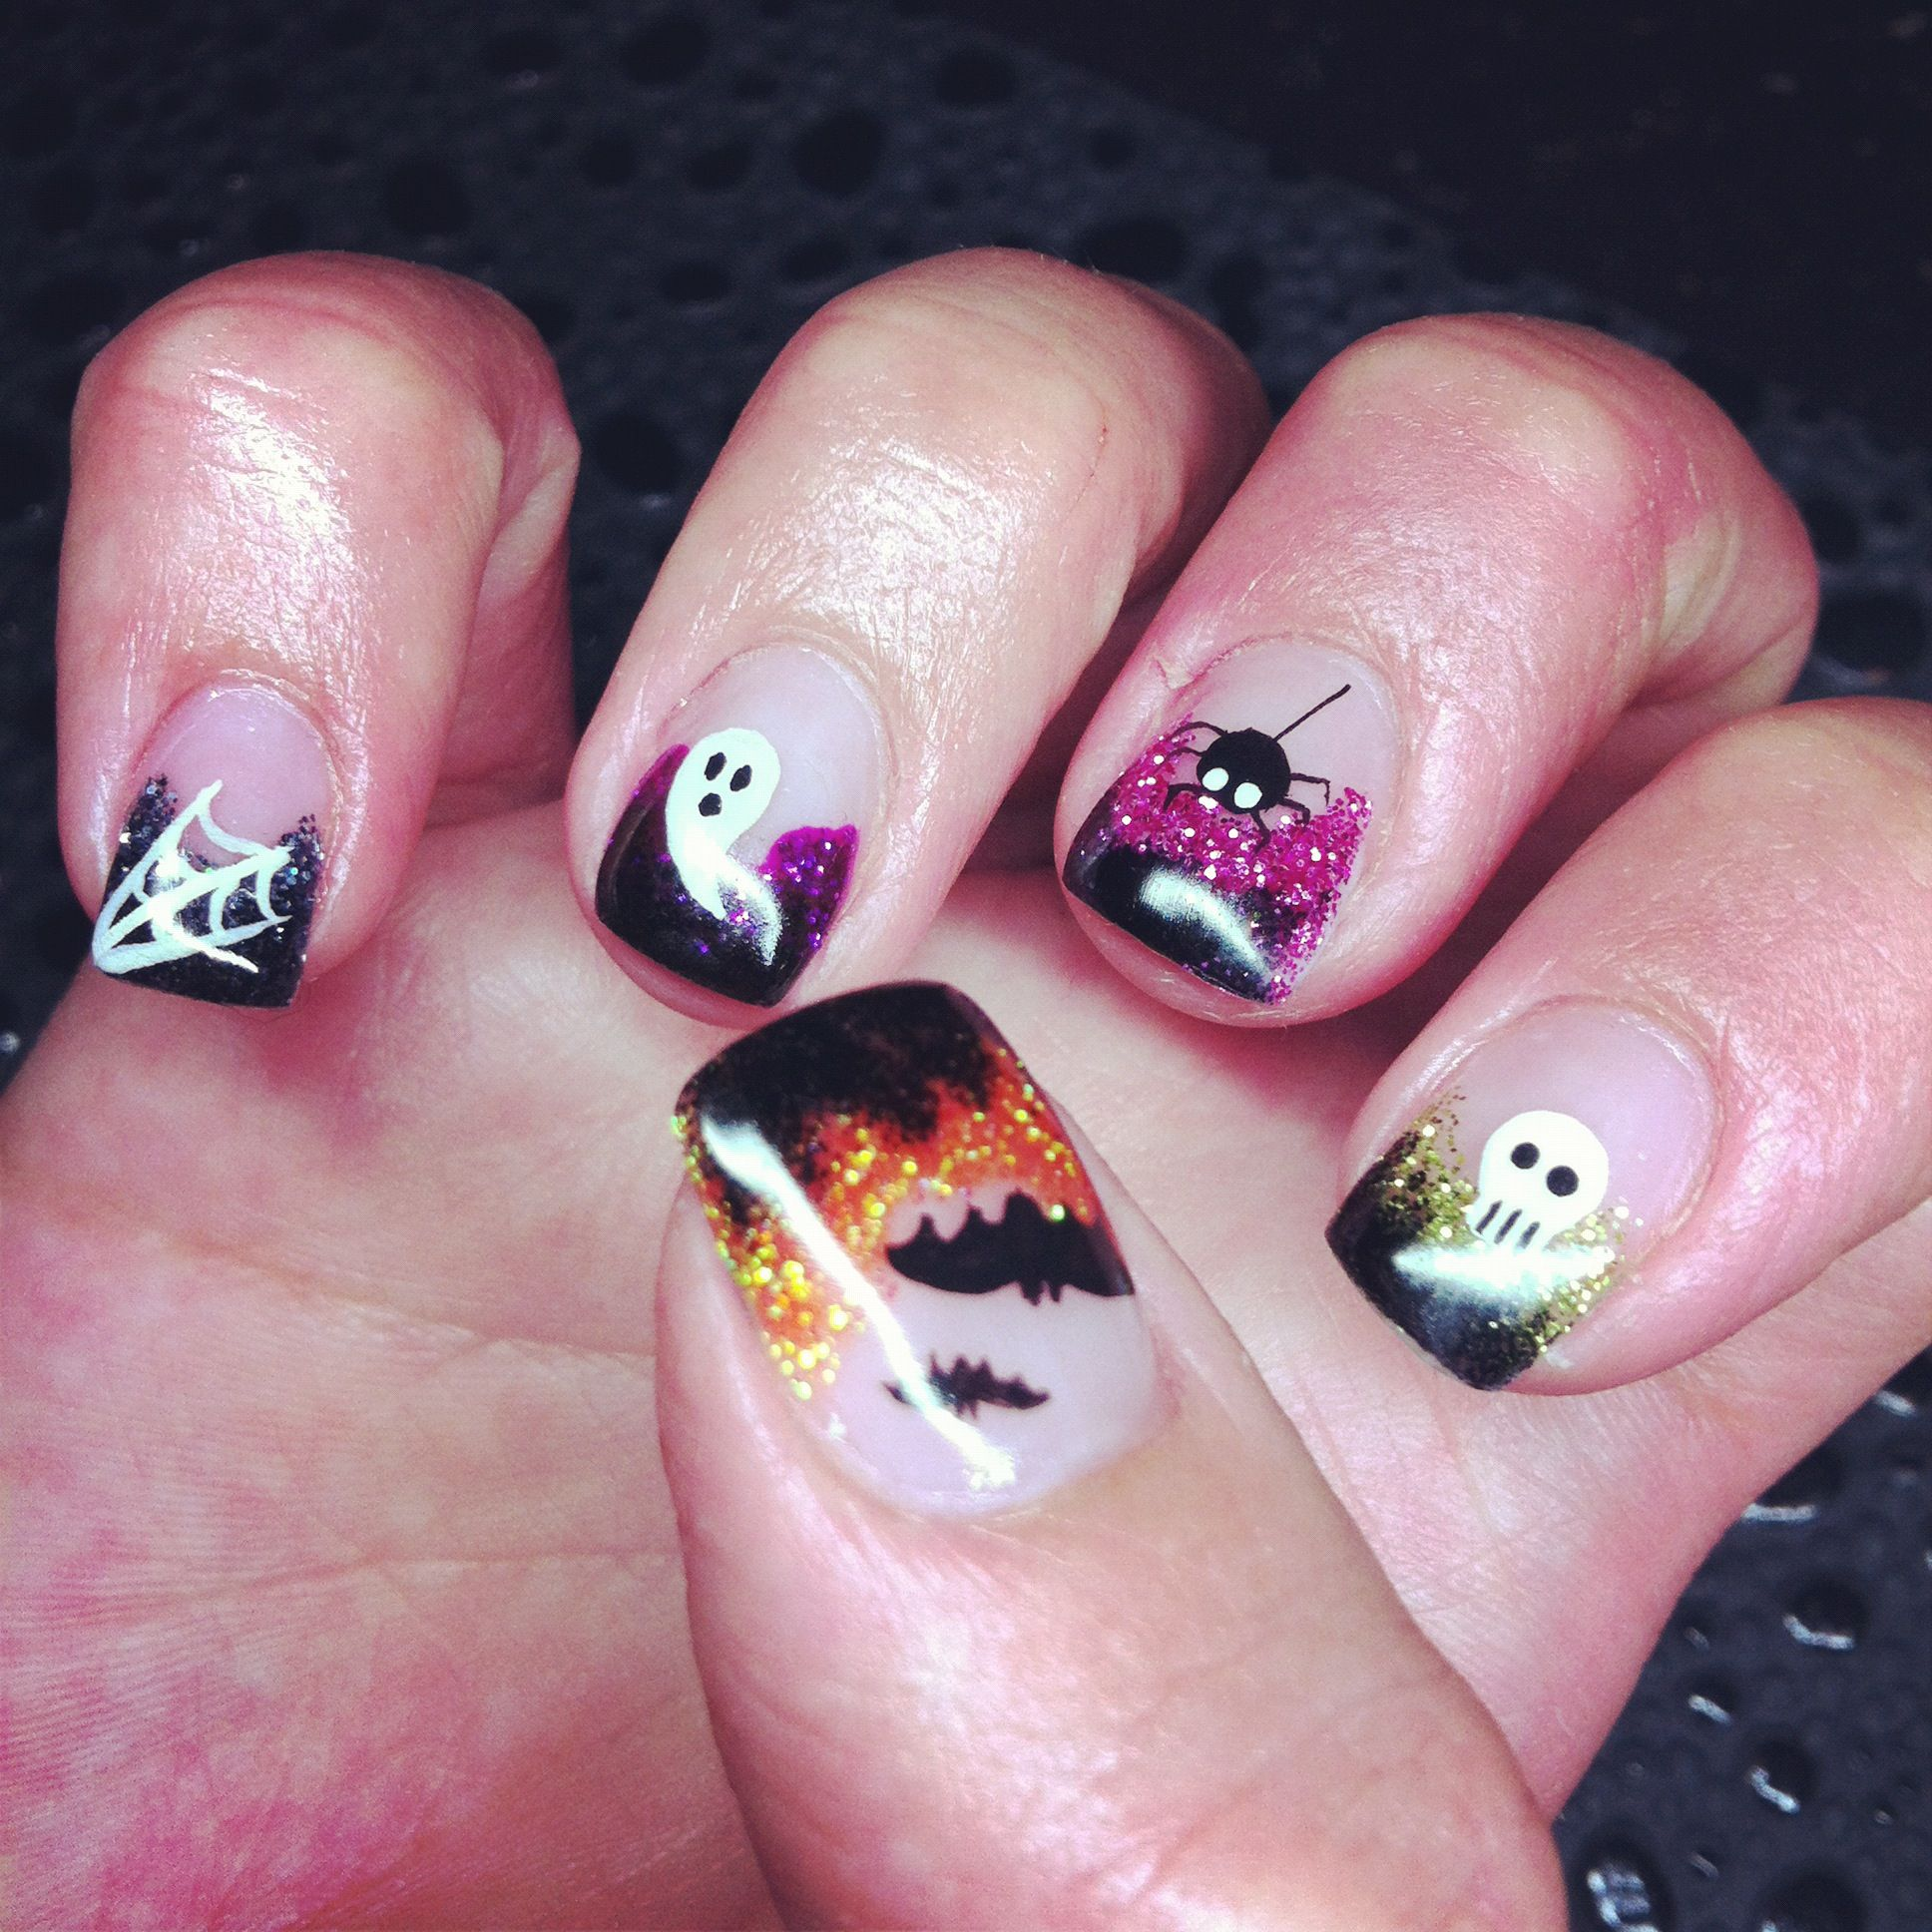 Colorful Halloween gel nails | Jenny's Beauty Room ...